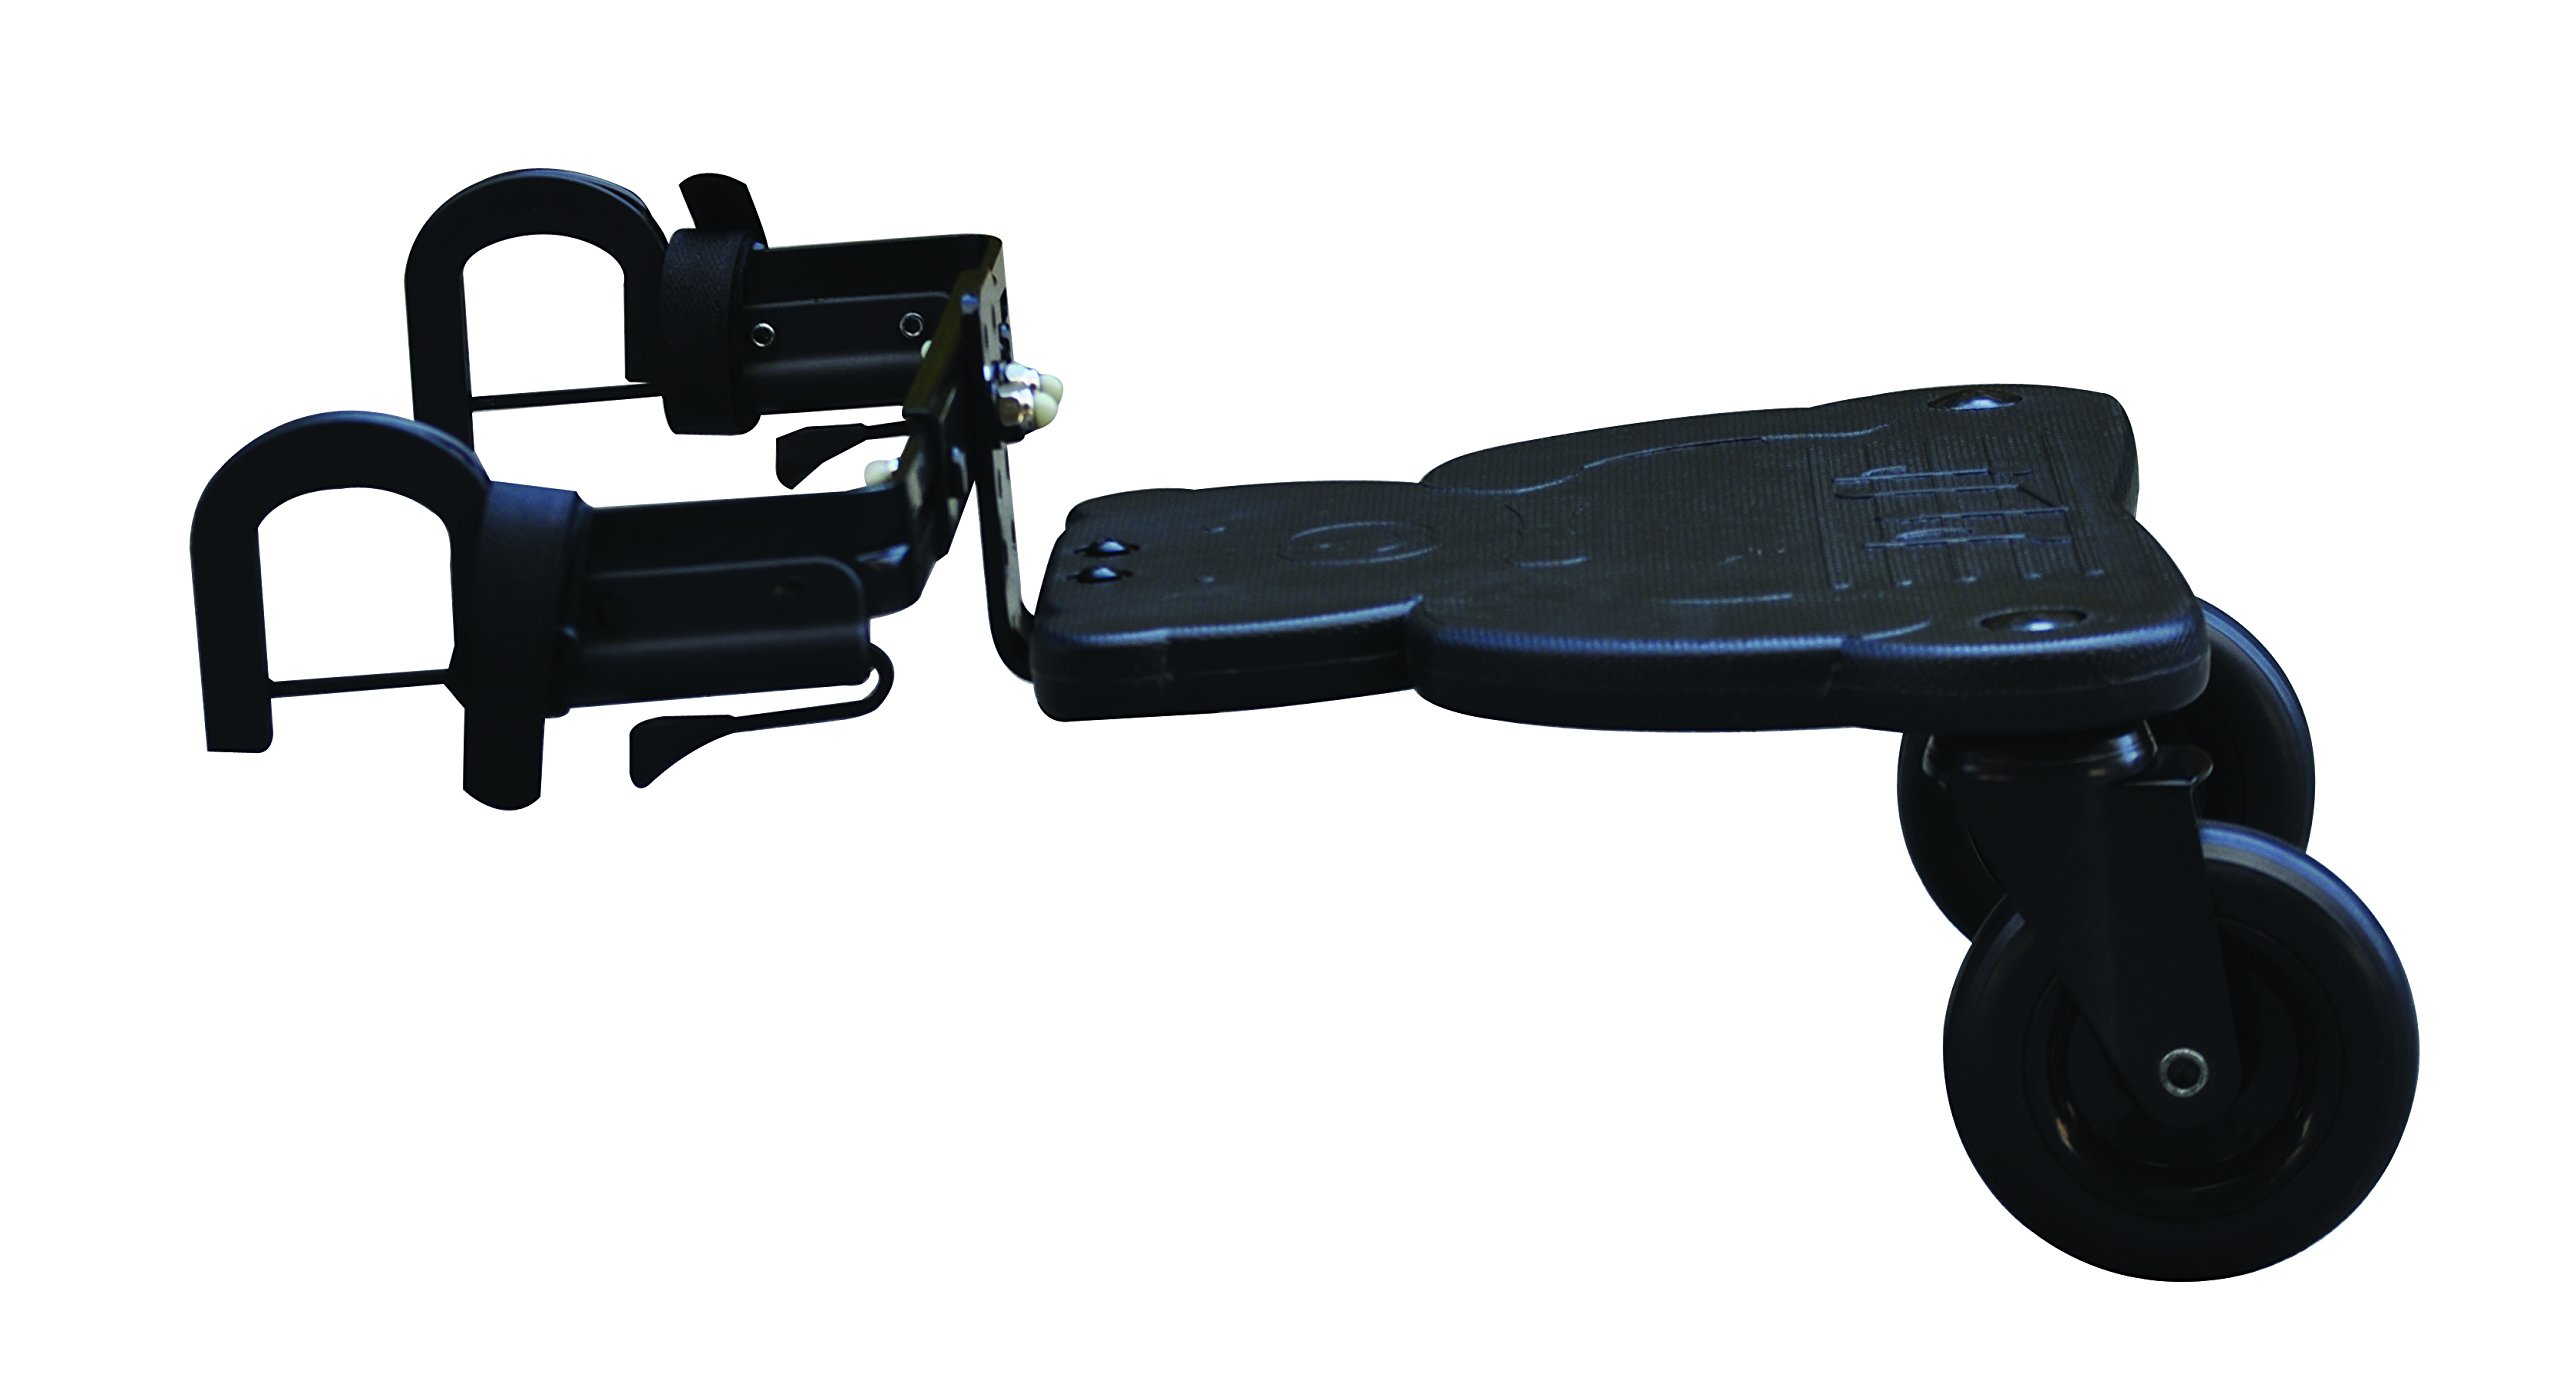 Englacha Easy Rider Trailer - Standing Platform - Quick and Easy to Use - Designed for Safety, Blue